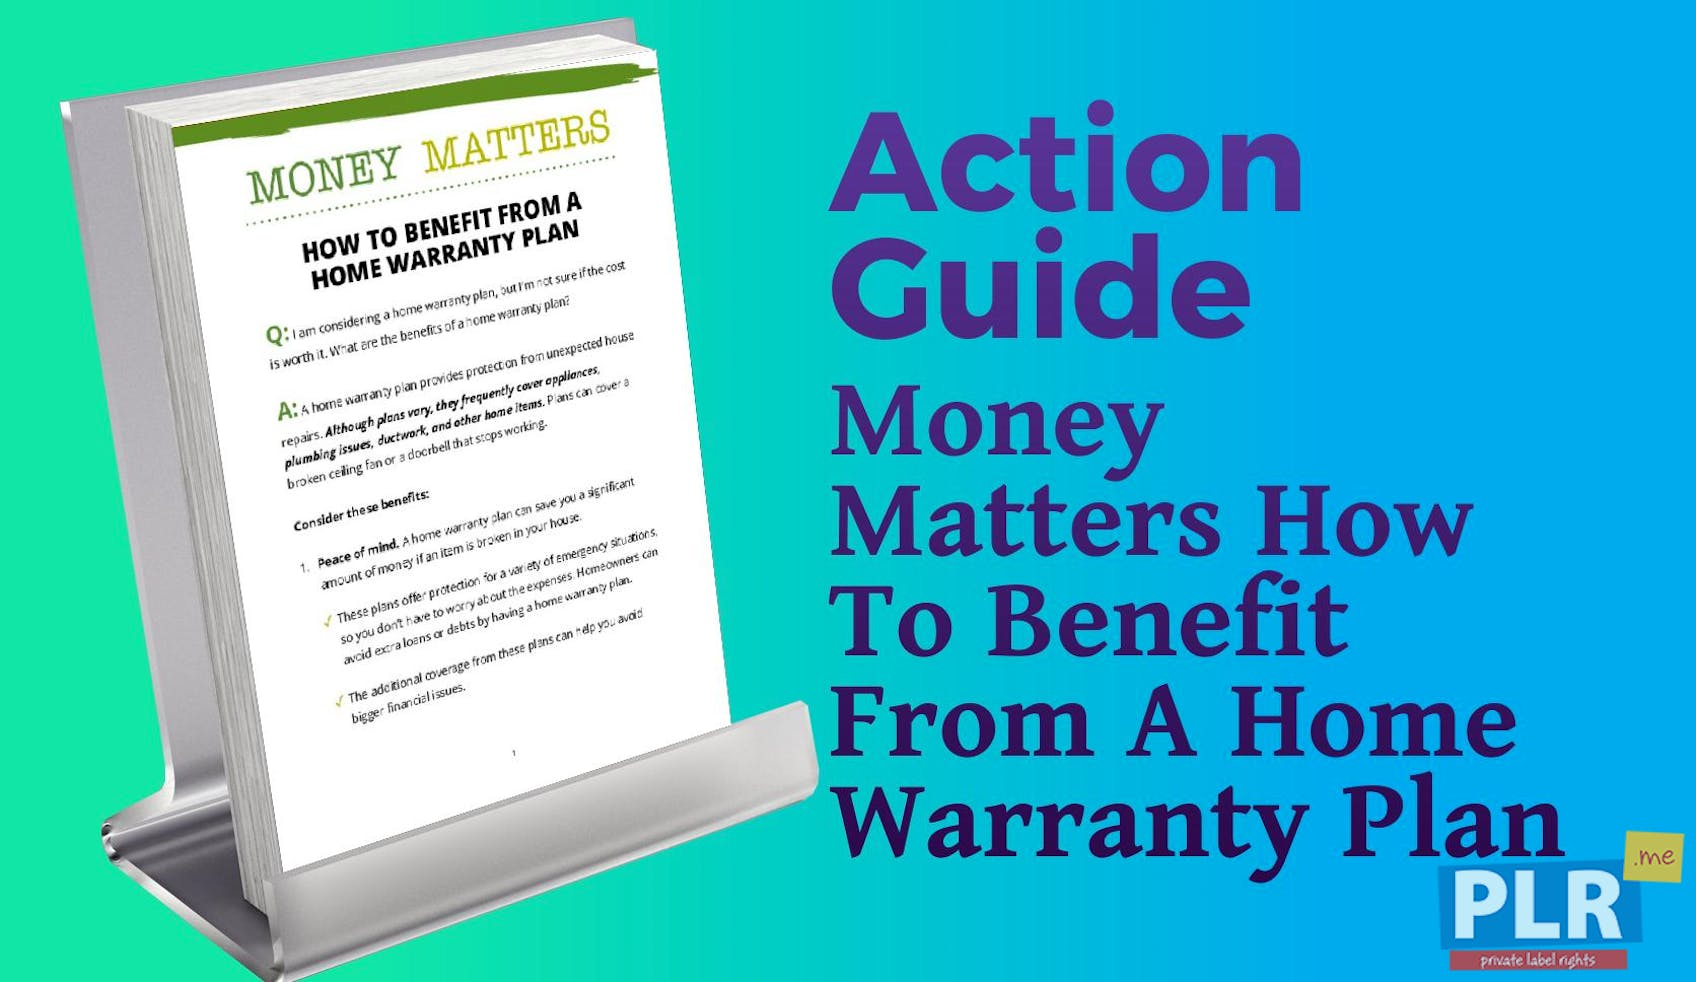 Money Matters How To Benefit From A Home Warranty Plan